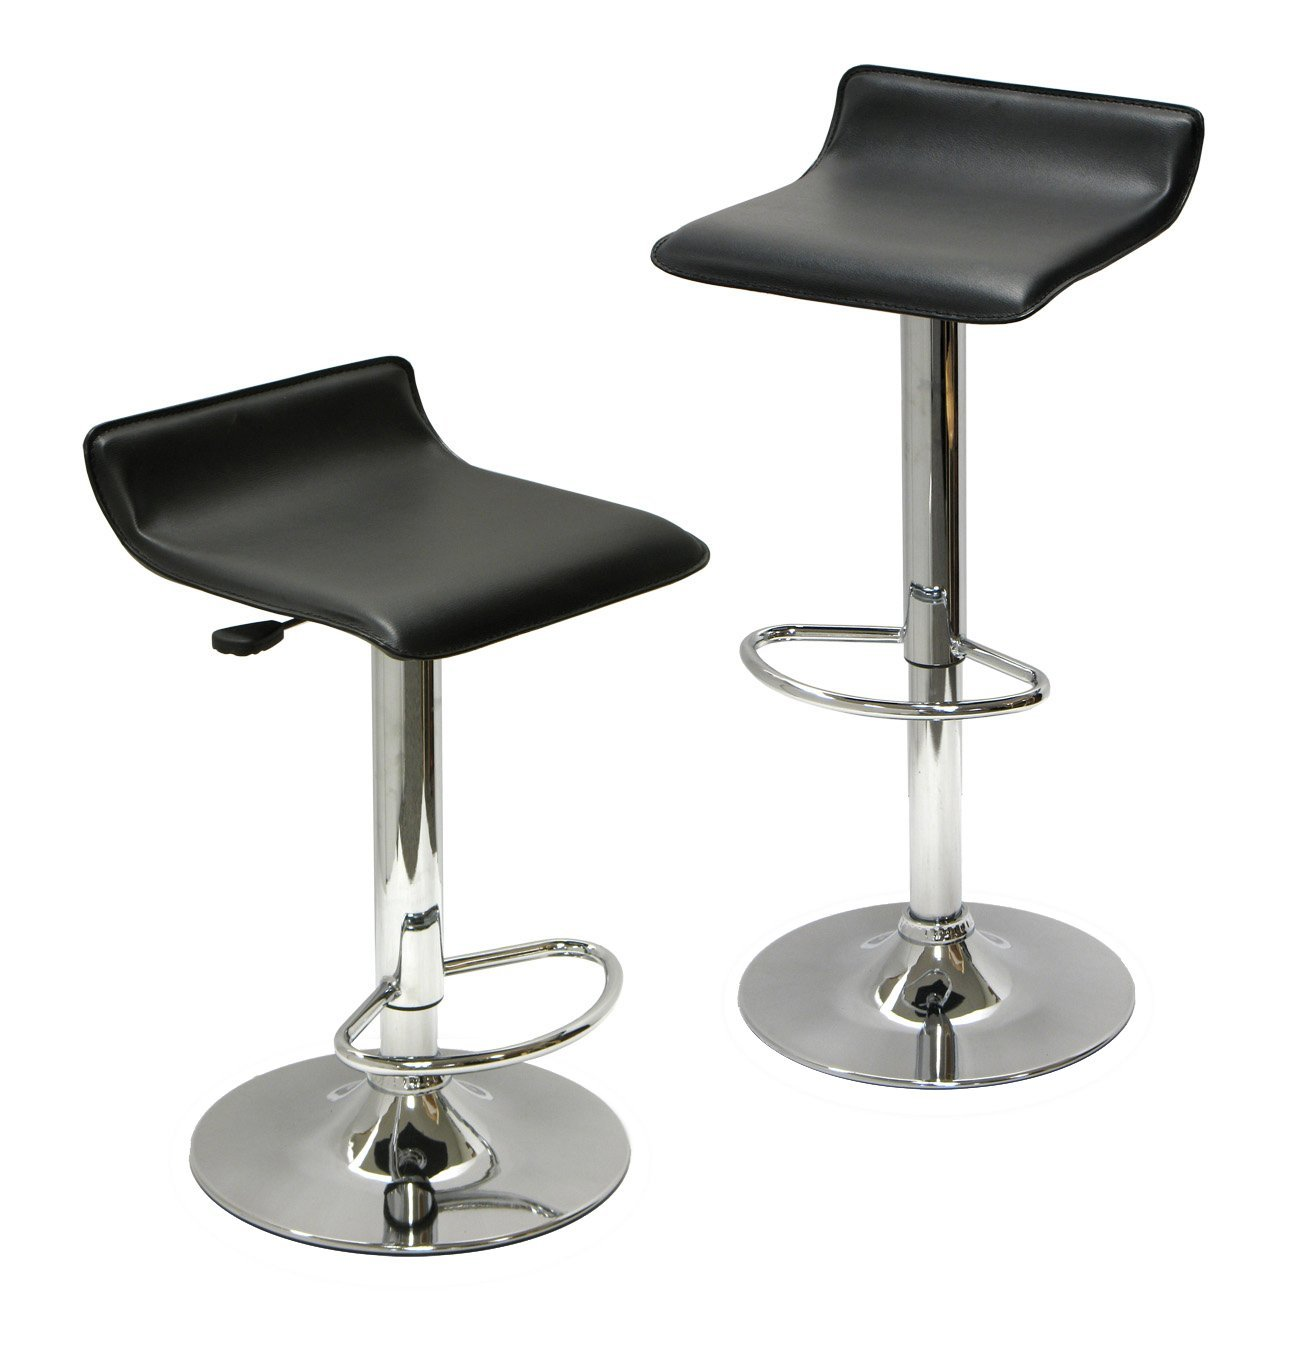 Winsome Wood Air Lift Adjustable Stools (Image 9 of 10)